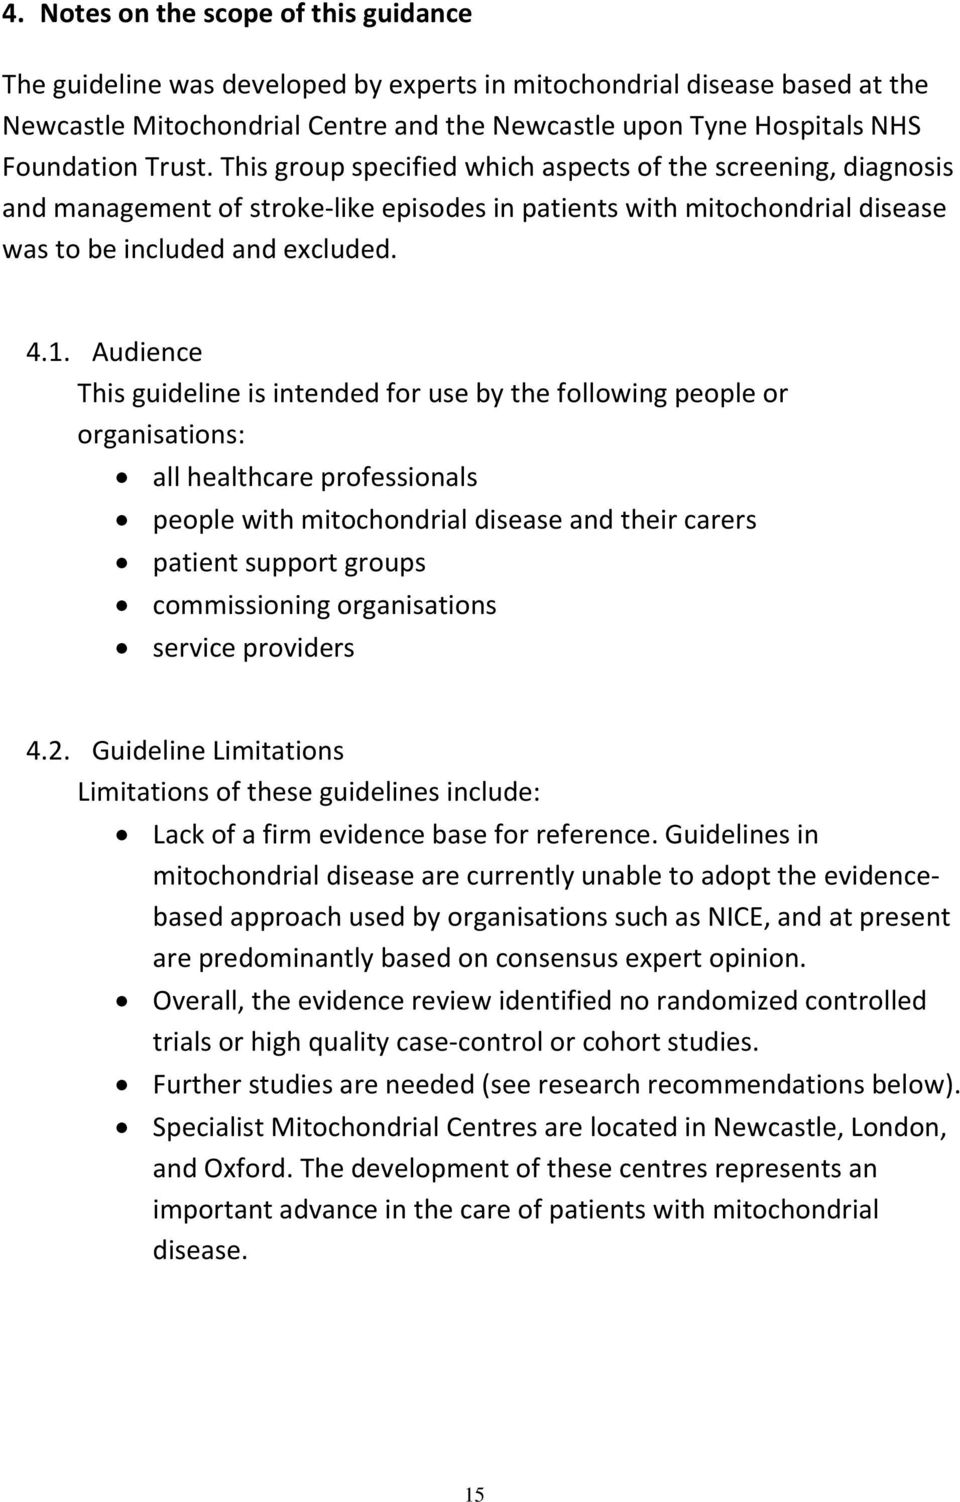 Audience This guideline is intended for use by the following people or organisations: all healthcare professionals people with mitochondrial disease and their carers patient support groups